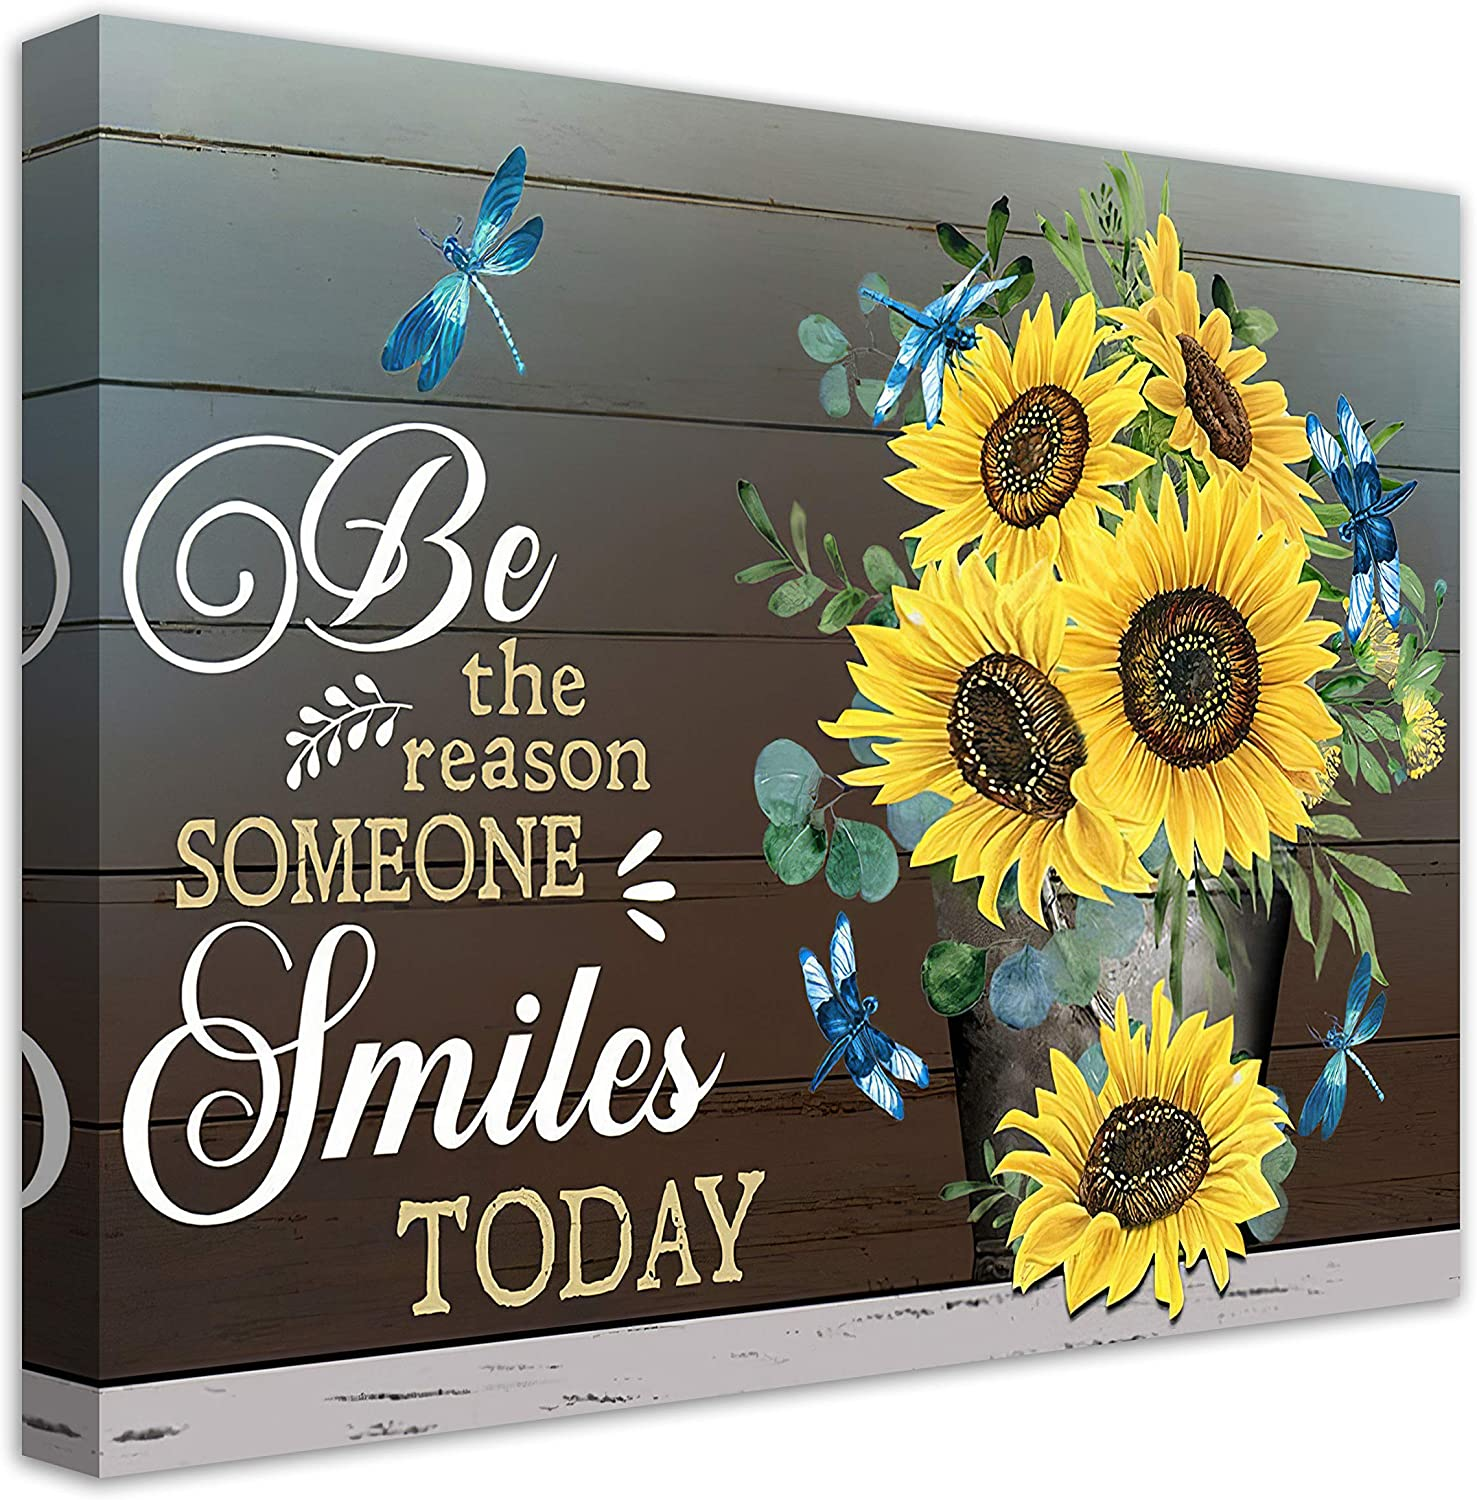 Inspirational Quotes Wall Art Sunflower Smile Today Motivational Canvas Wall Art For Office Living Room Kitchen Wall Decor Sunflower Pictures Canvas Giclee Prints Artwork Framed Ready To Hang 16x20 Inch